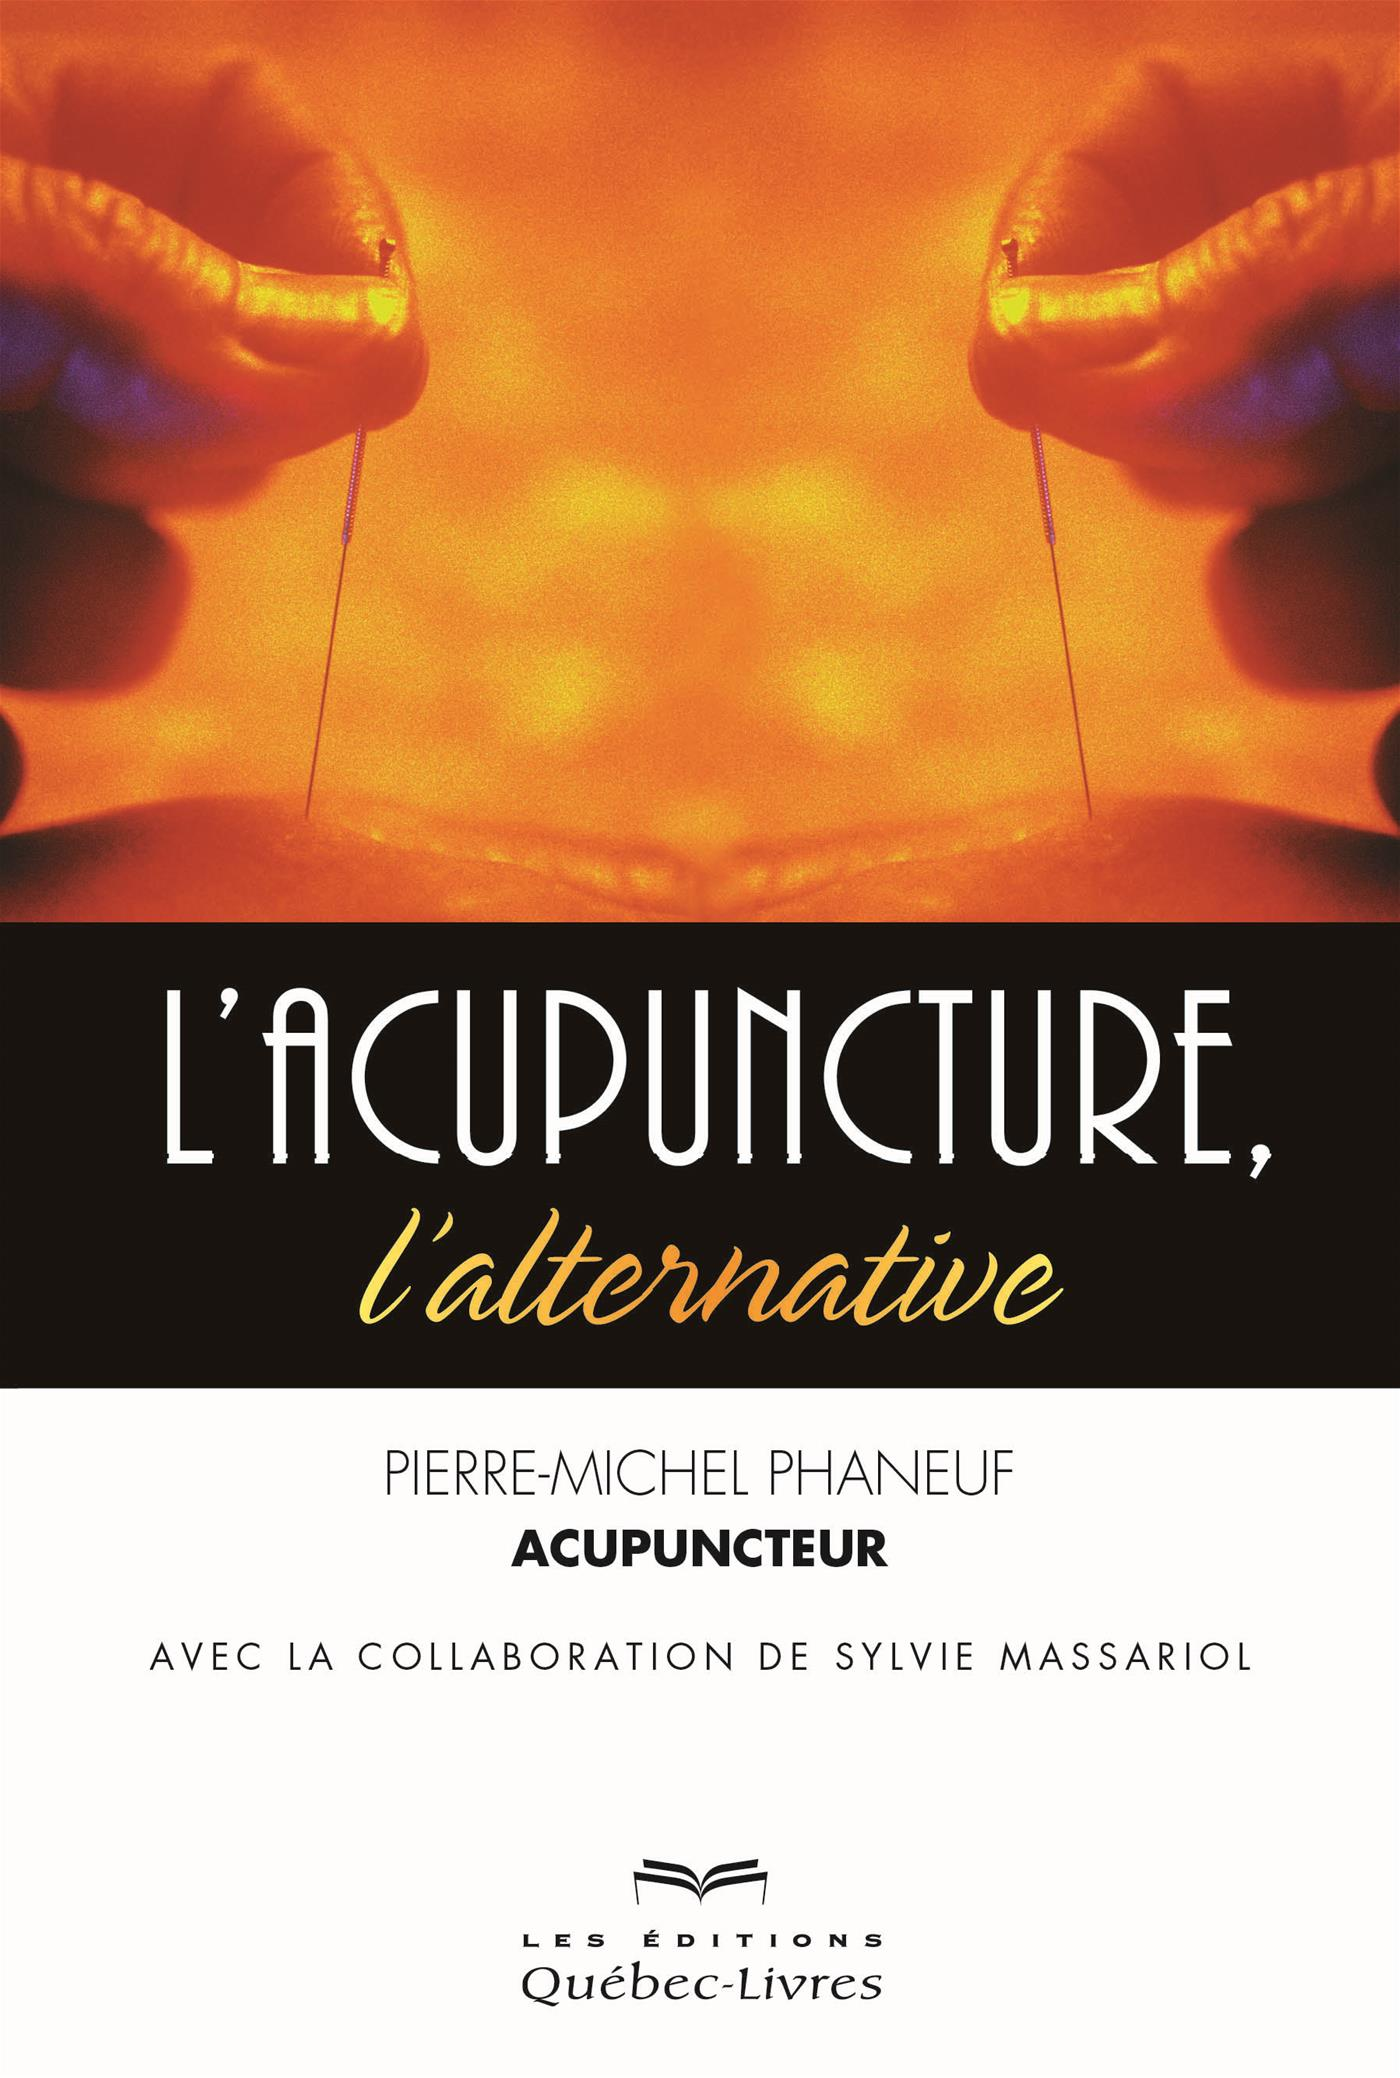 L'acupuncture, l'alternative